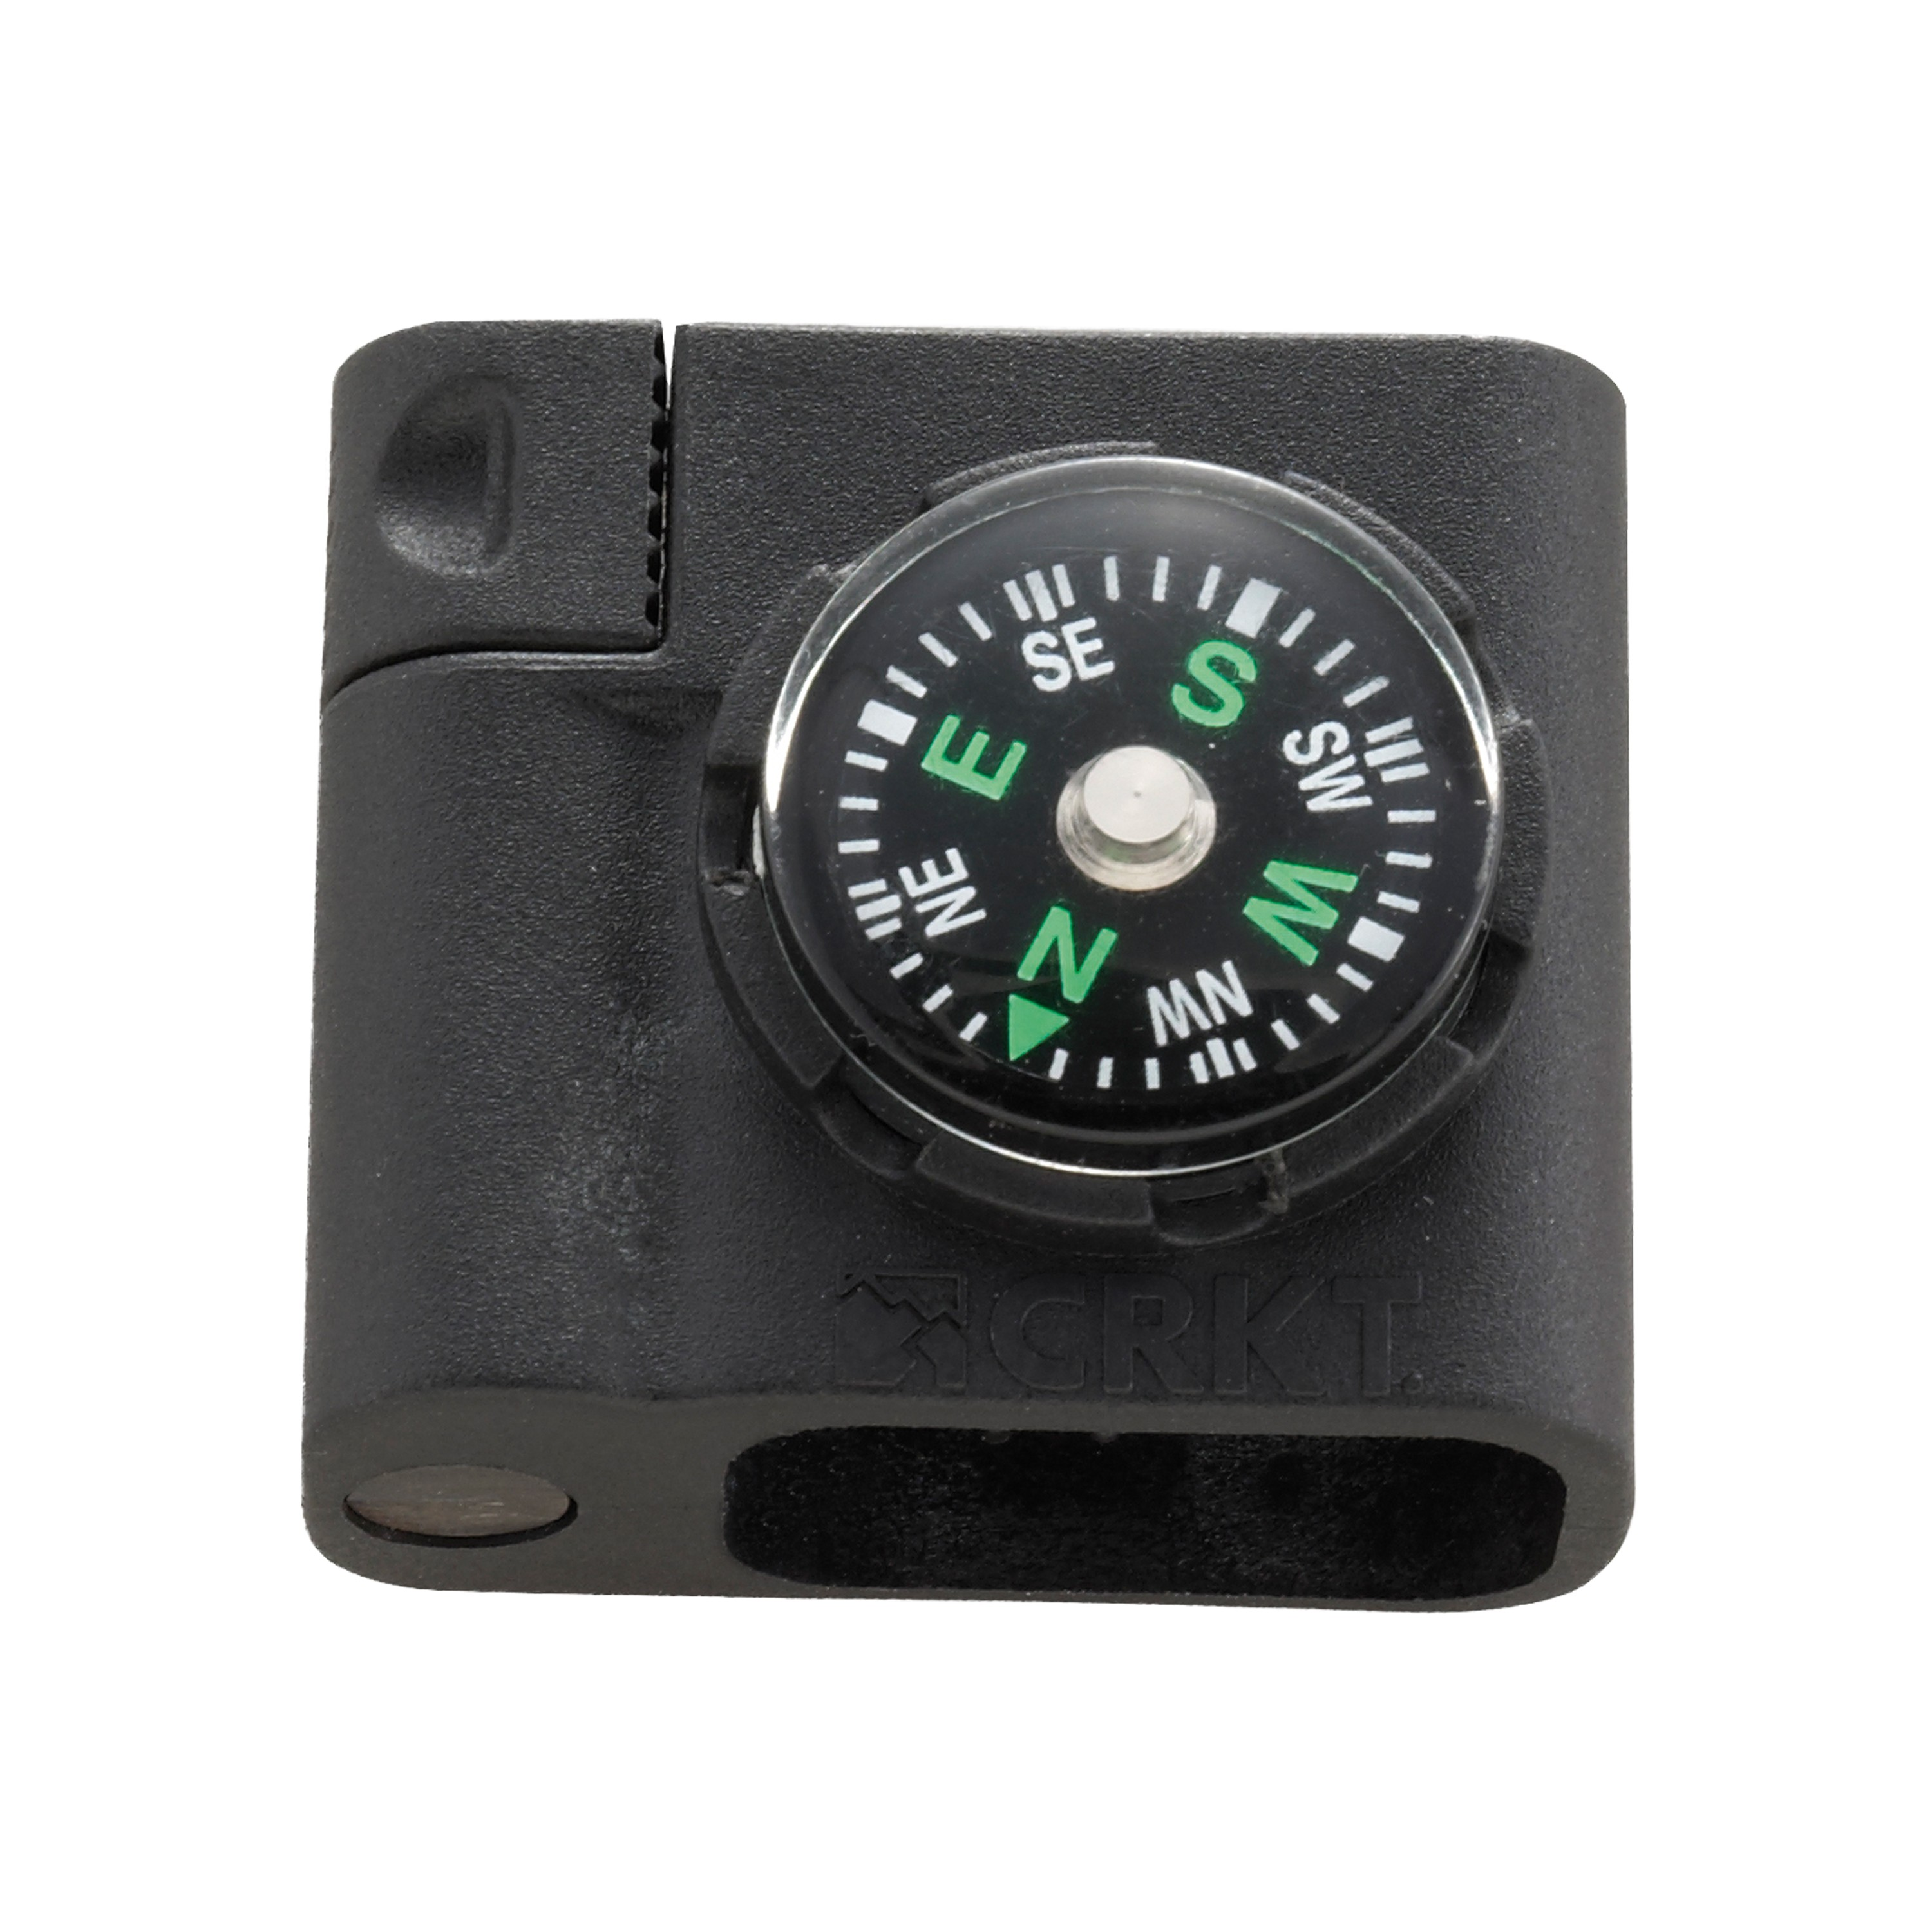 Stokes Survival Bracelet Accessory - Compass & Firestarter